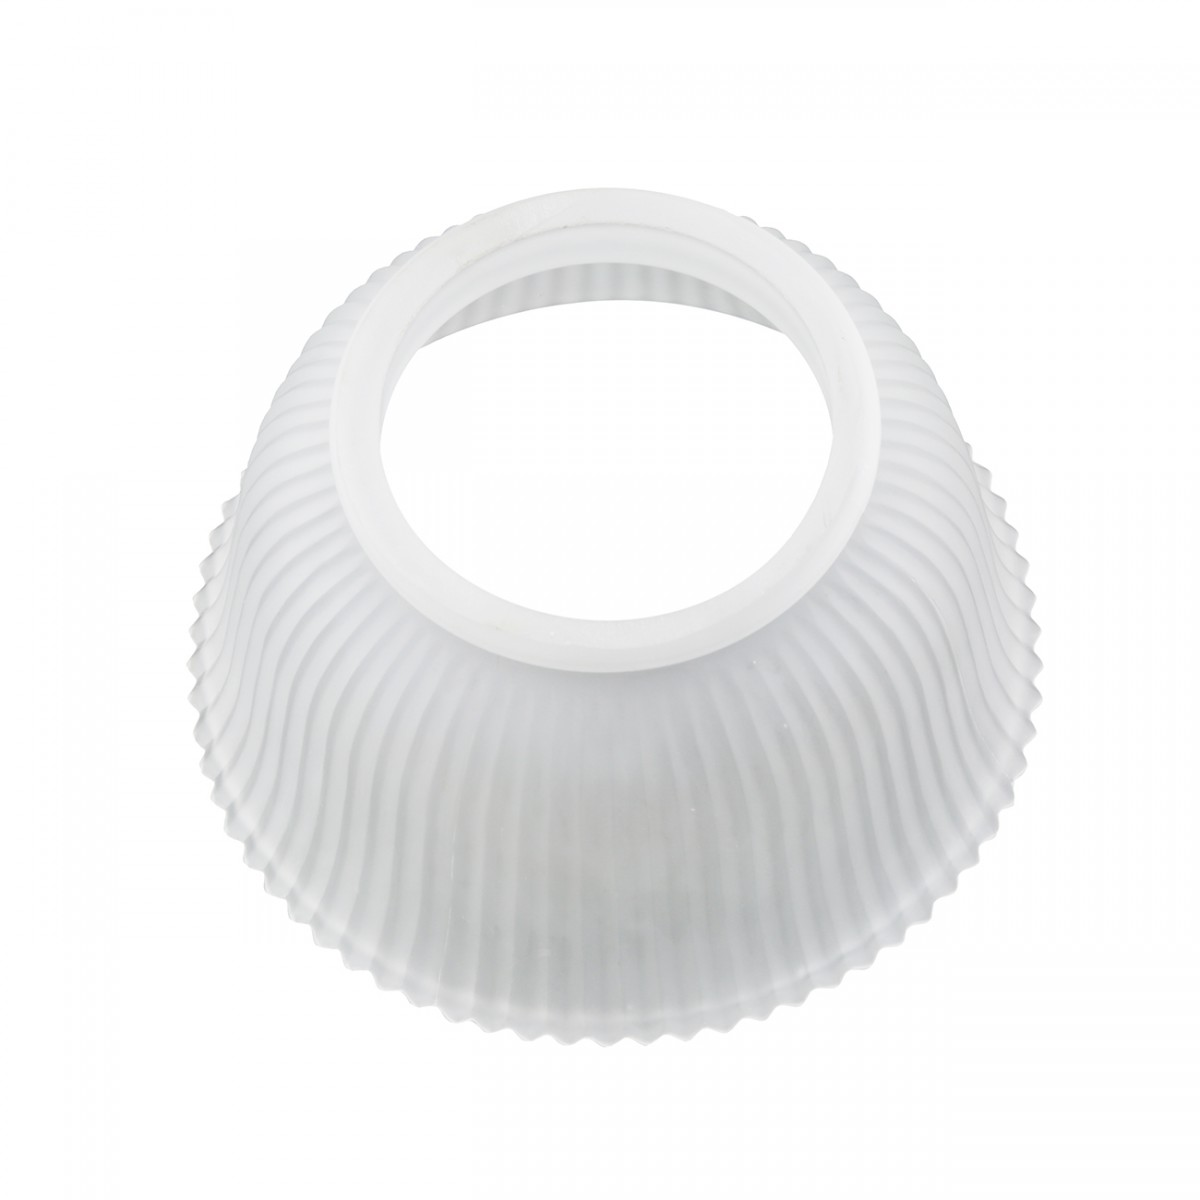 Lamp Shade White Glass Traditional 3 58 H x 4 Fitter Glass Lamp Shades Lamp Shades 4 Fitter Glass Lamp Shade